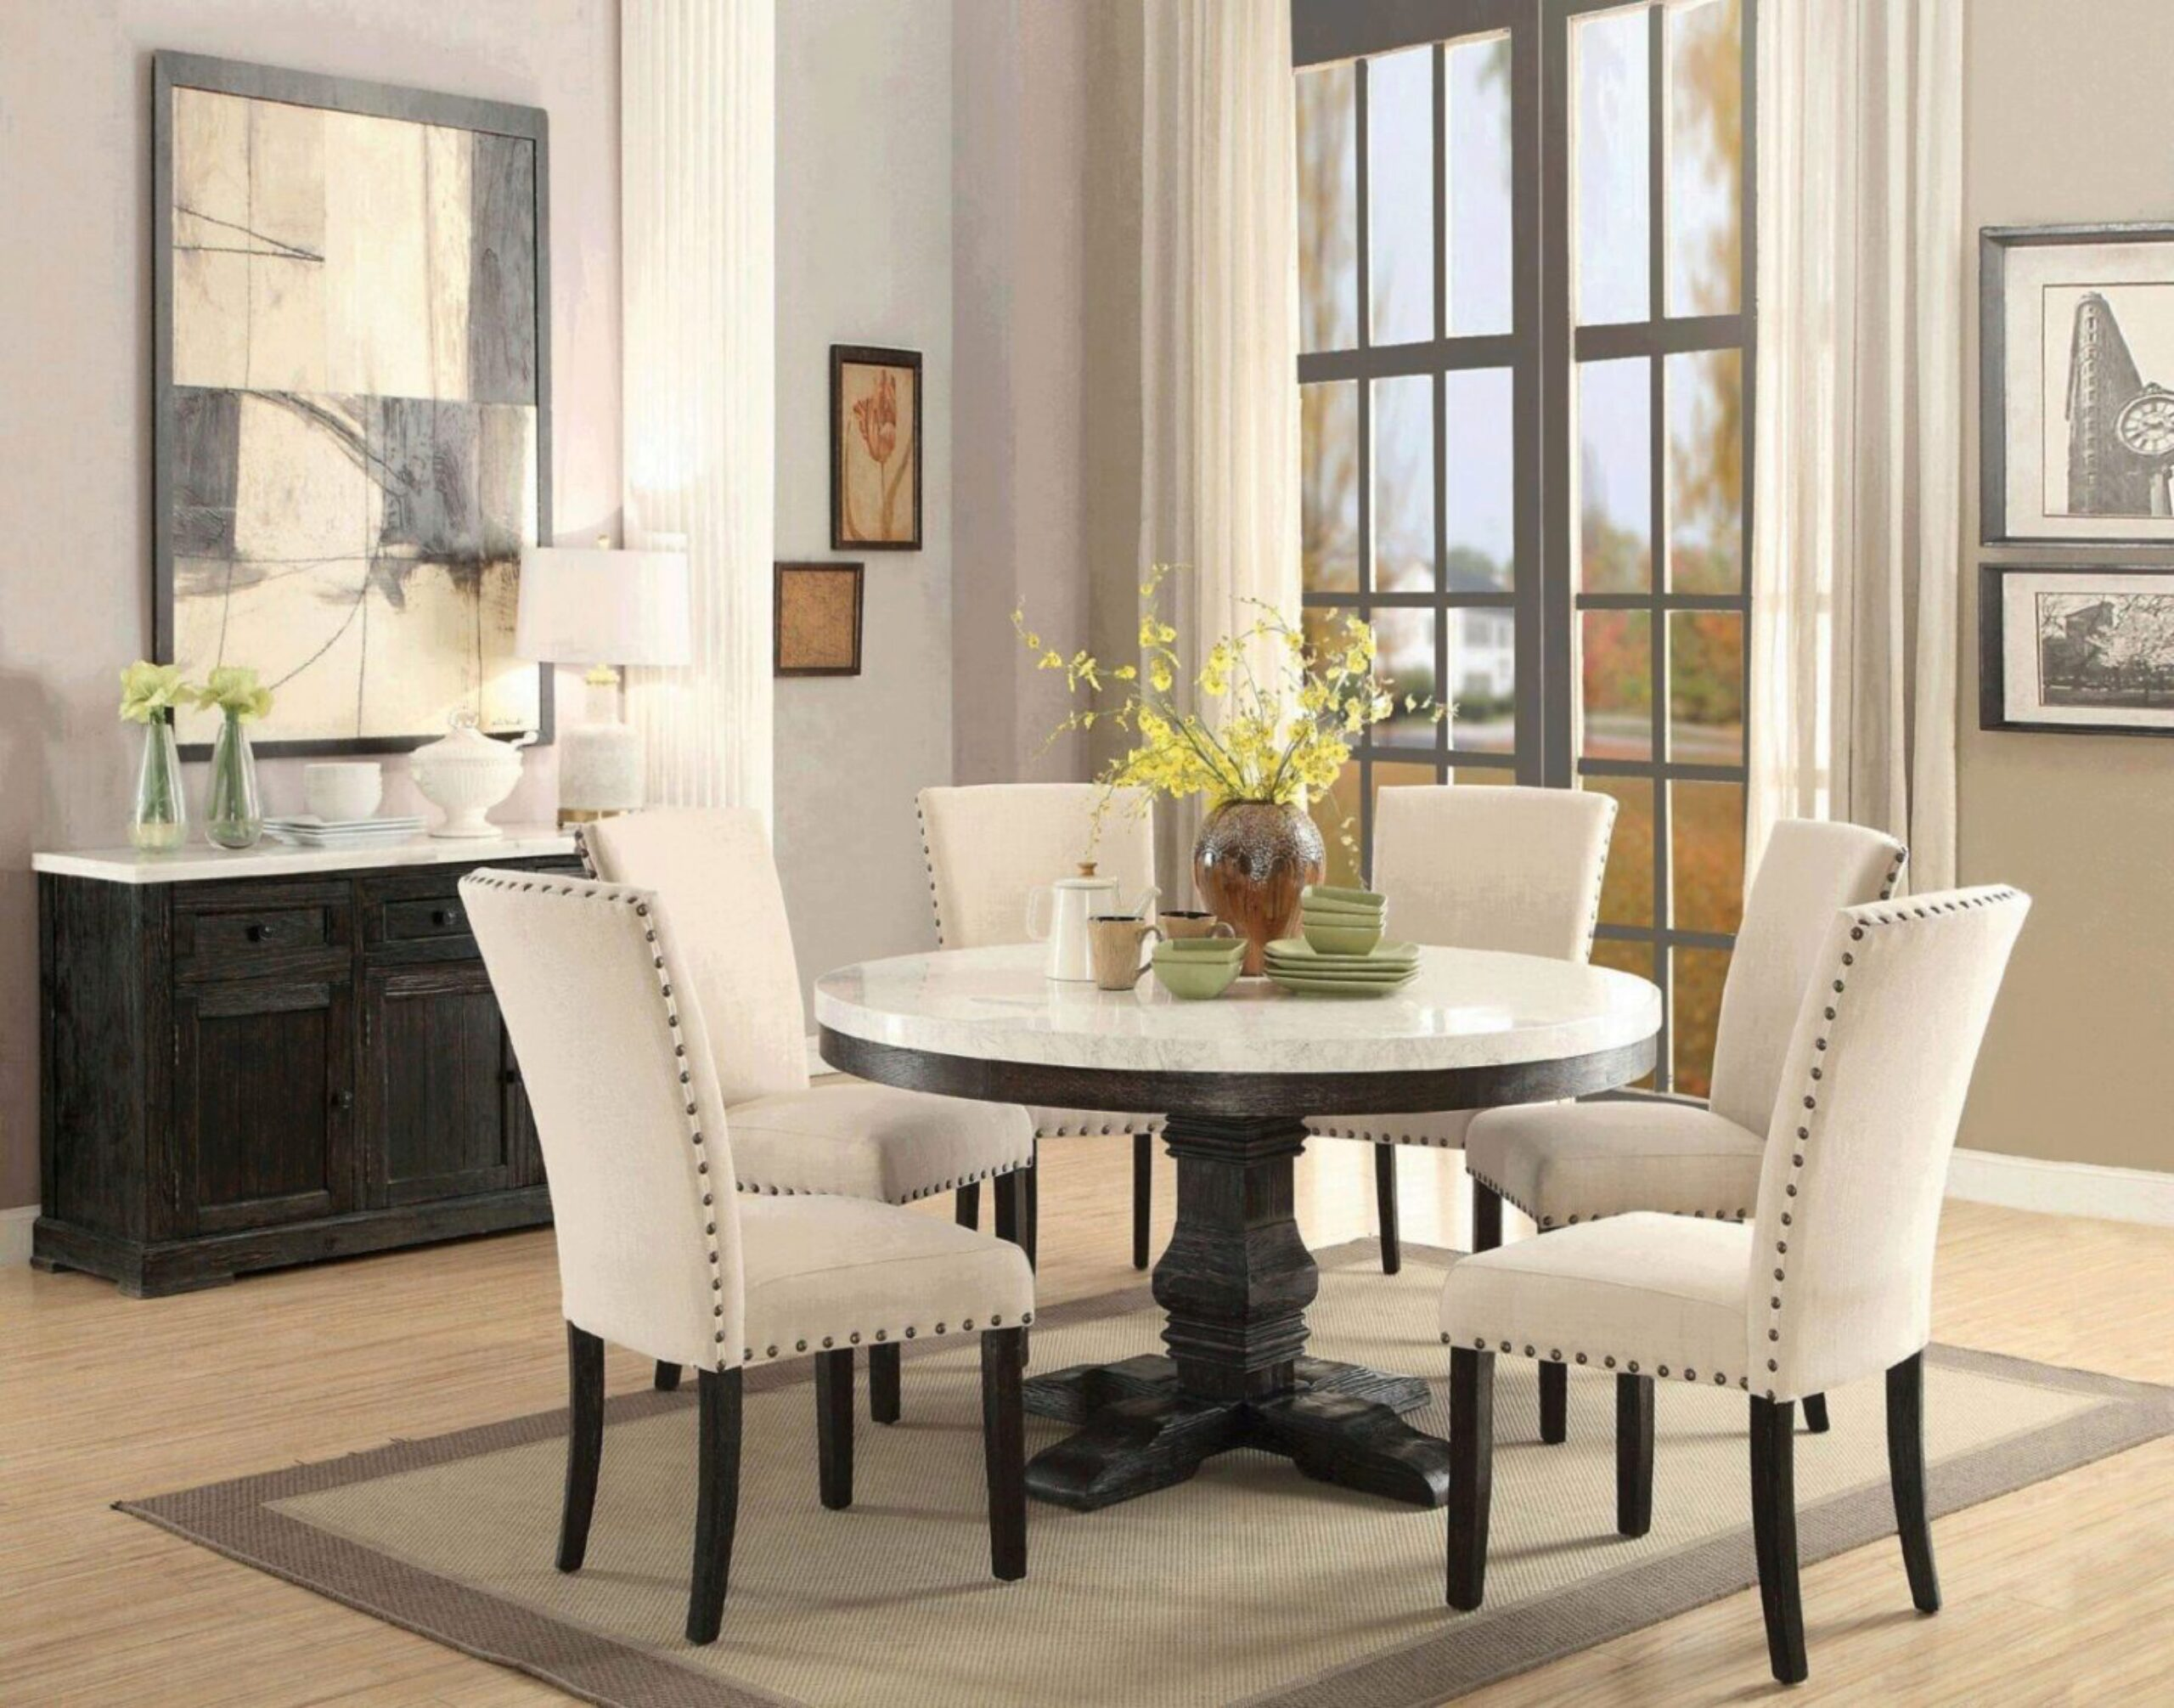 White Marble Top Black Round Dining, Black And White Dining Room Set